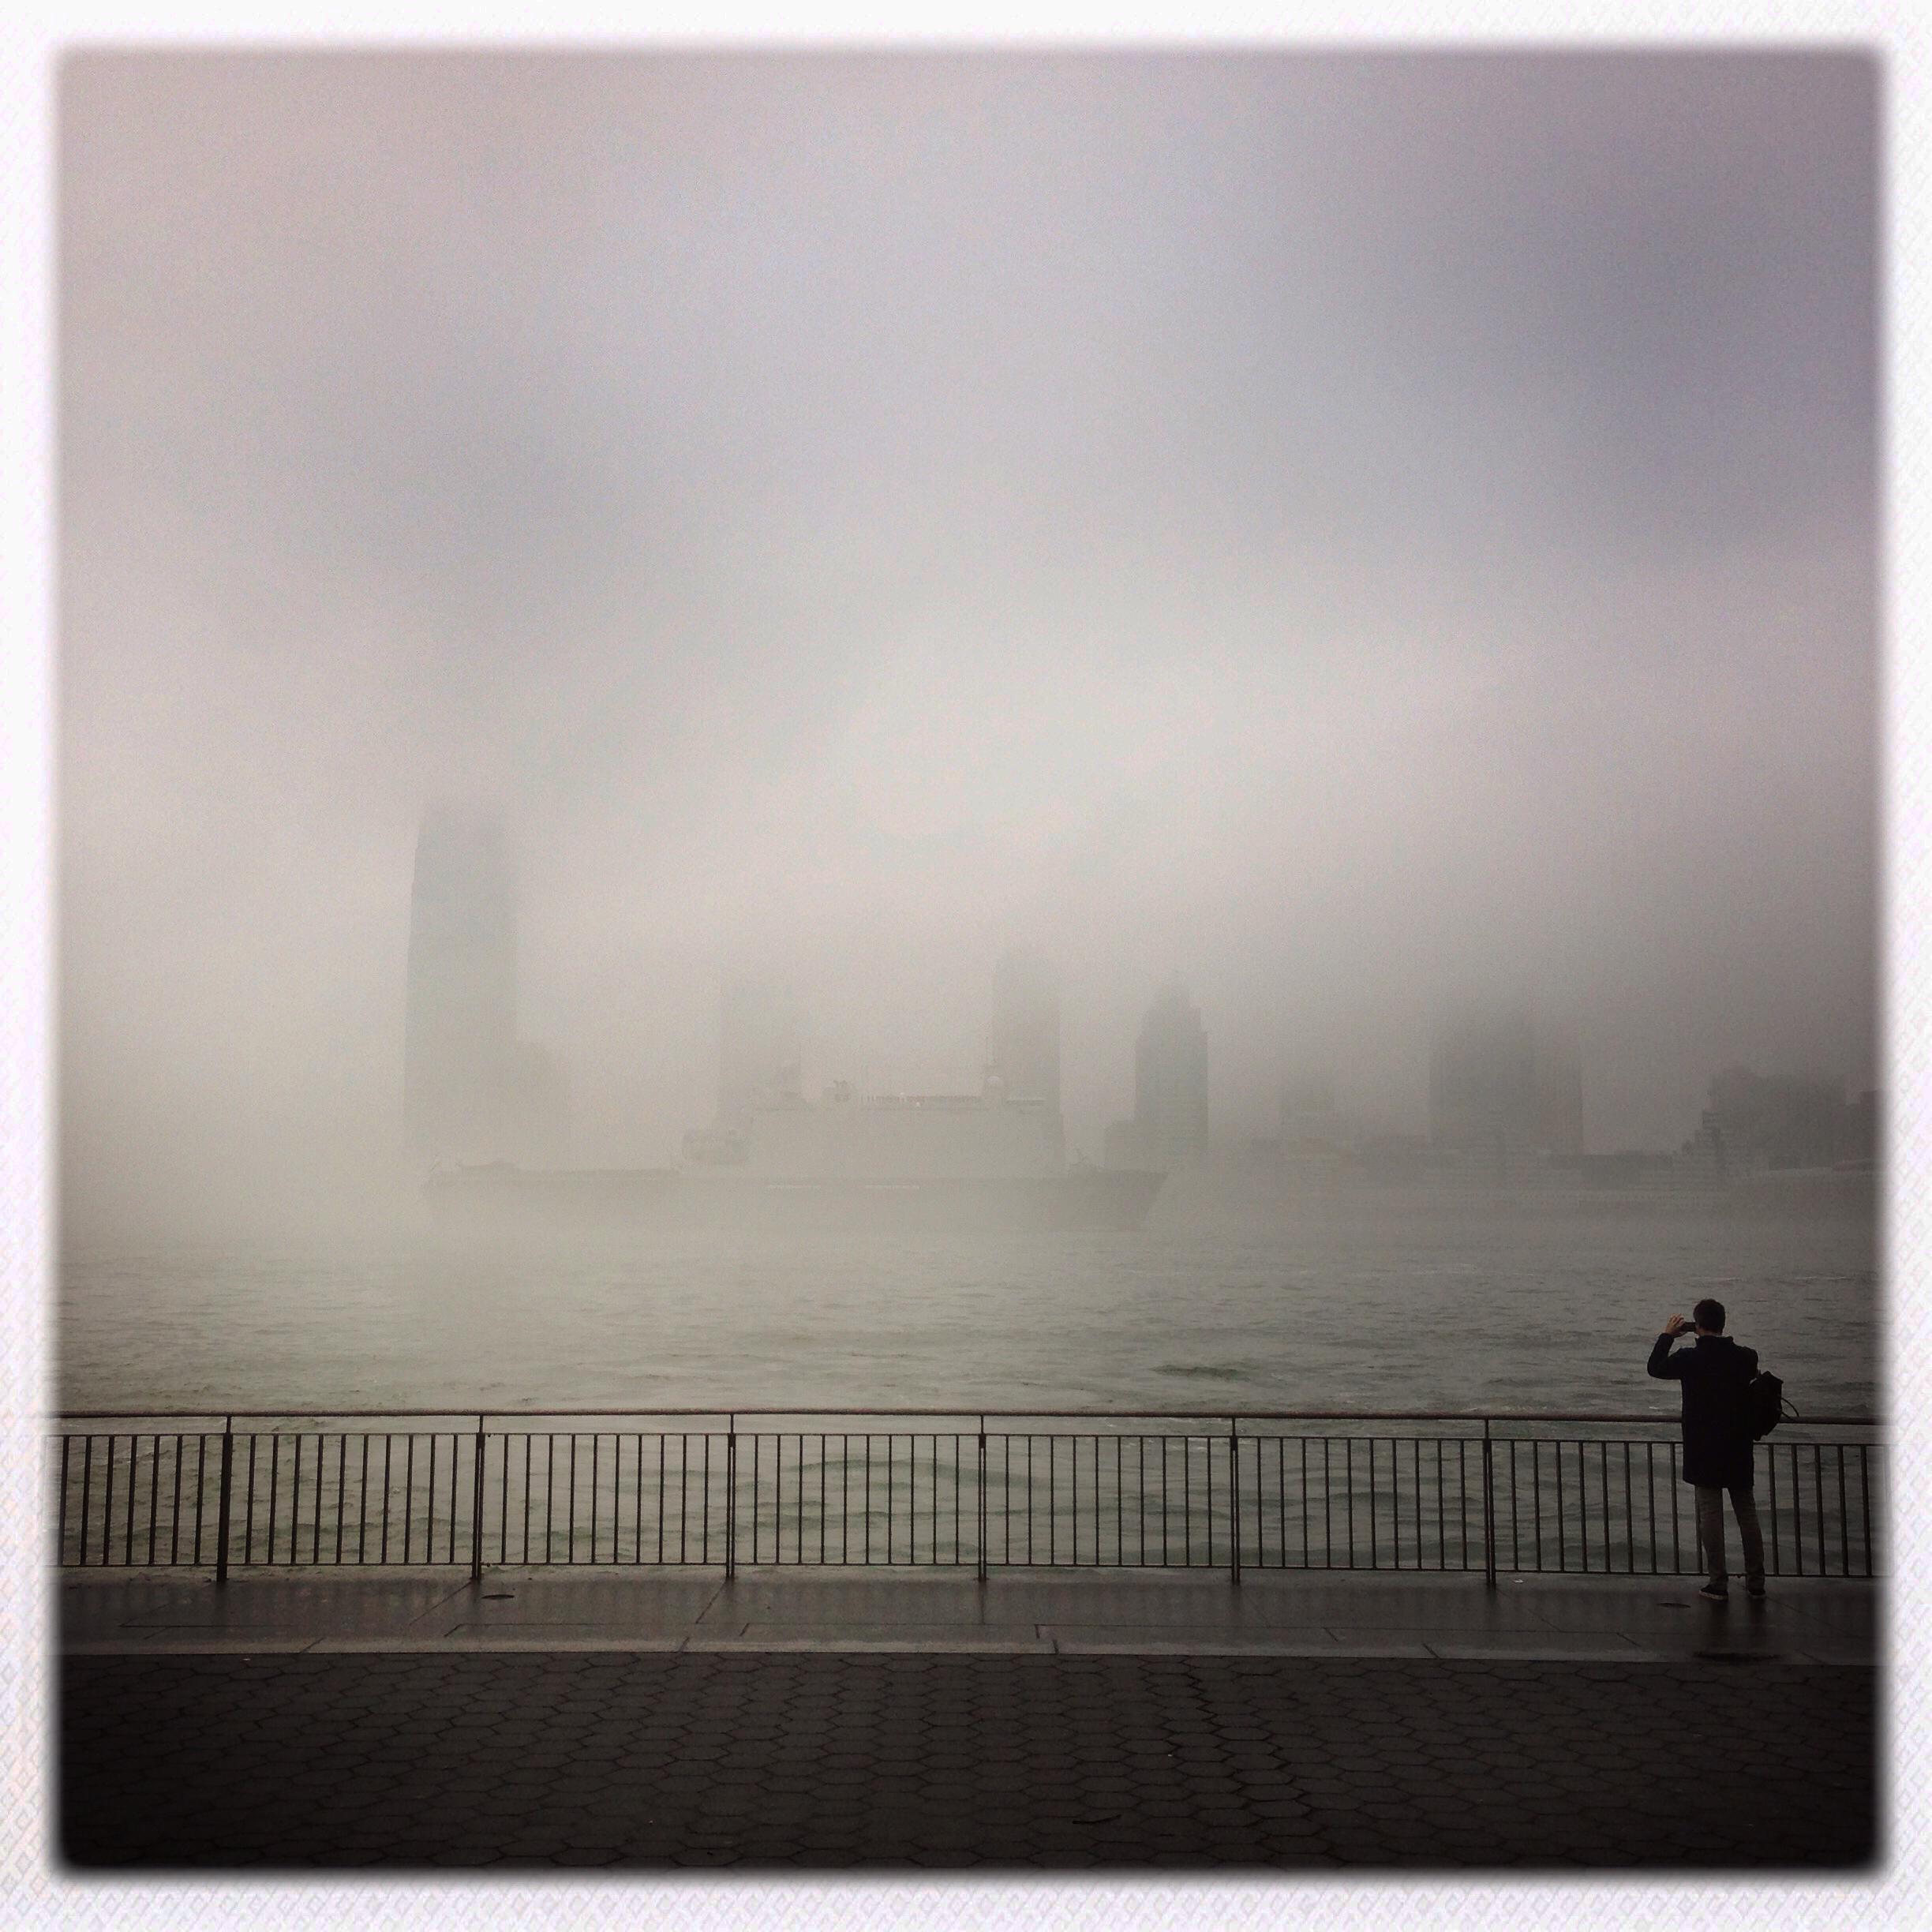 Fog Photographer Battery Park Promenade